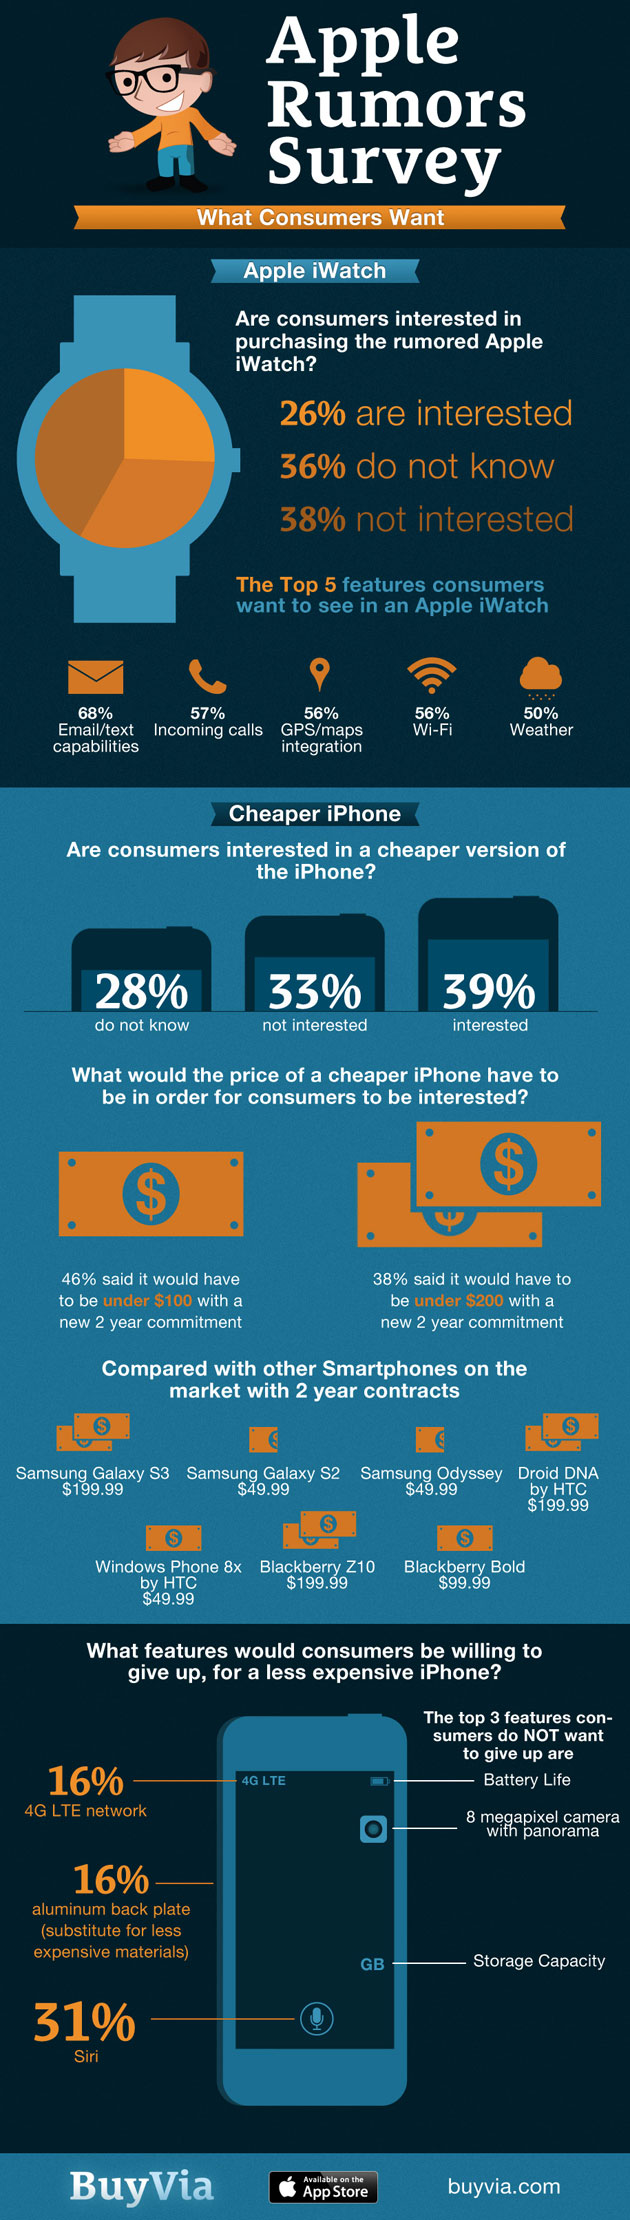 iWatch - Cheaper iPhone Infographic